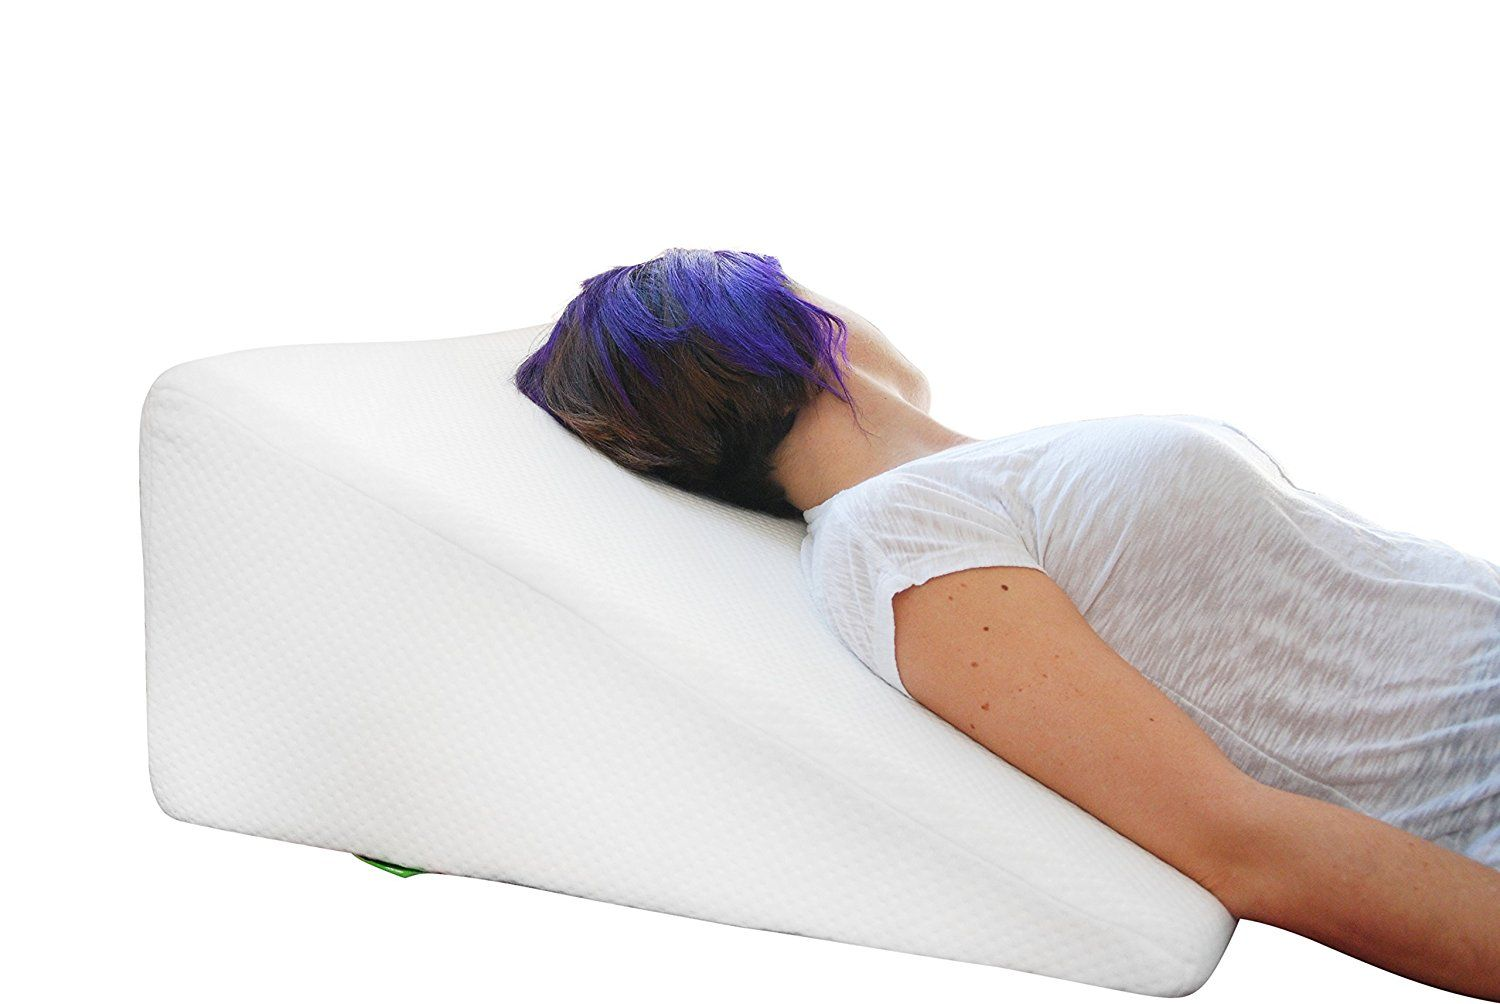 Amazon Com Bed Wedge Pillow With Memory Foam Top By Cushy Form Best For Sleeping Reading Rest Or Elevation Breat Bed Wedge Pillow Wedge Pillow Bed Wedge